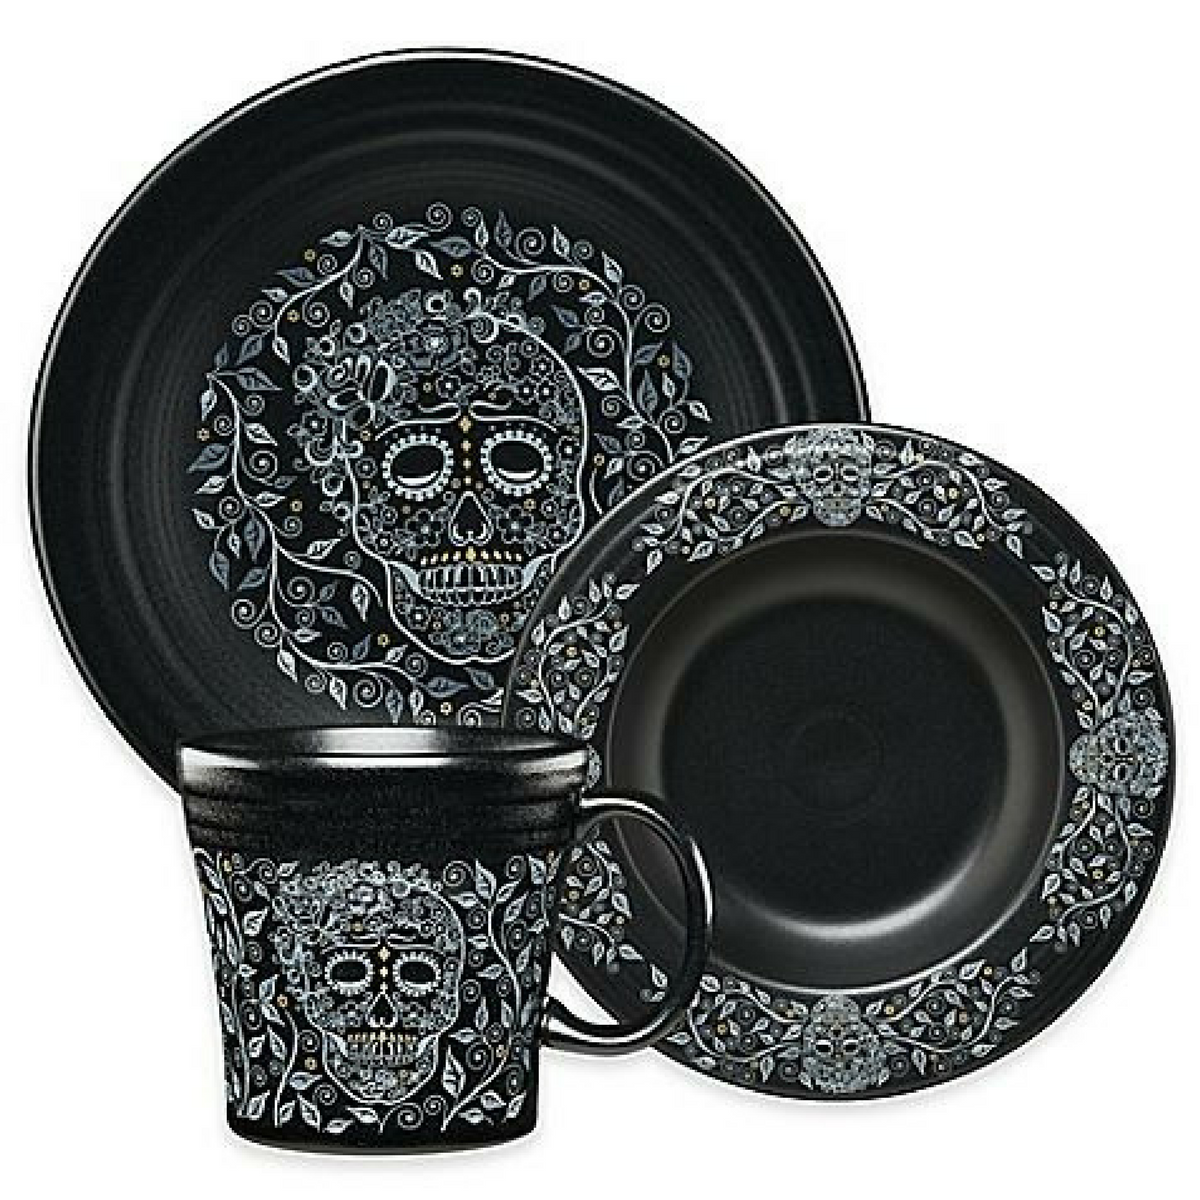 Skull and Vine Dinnerwares